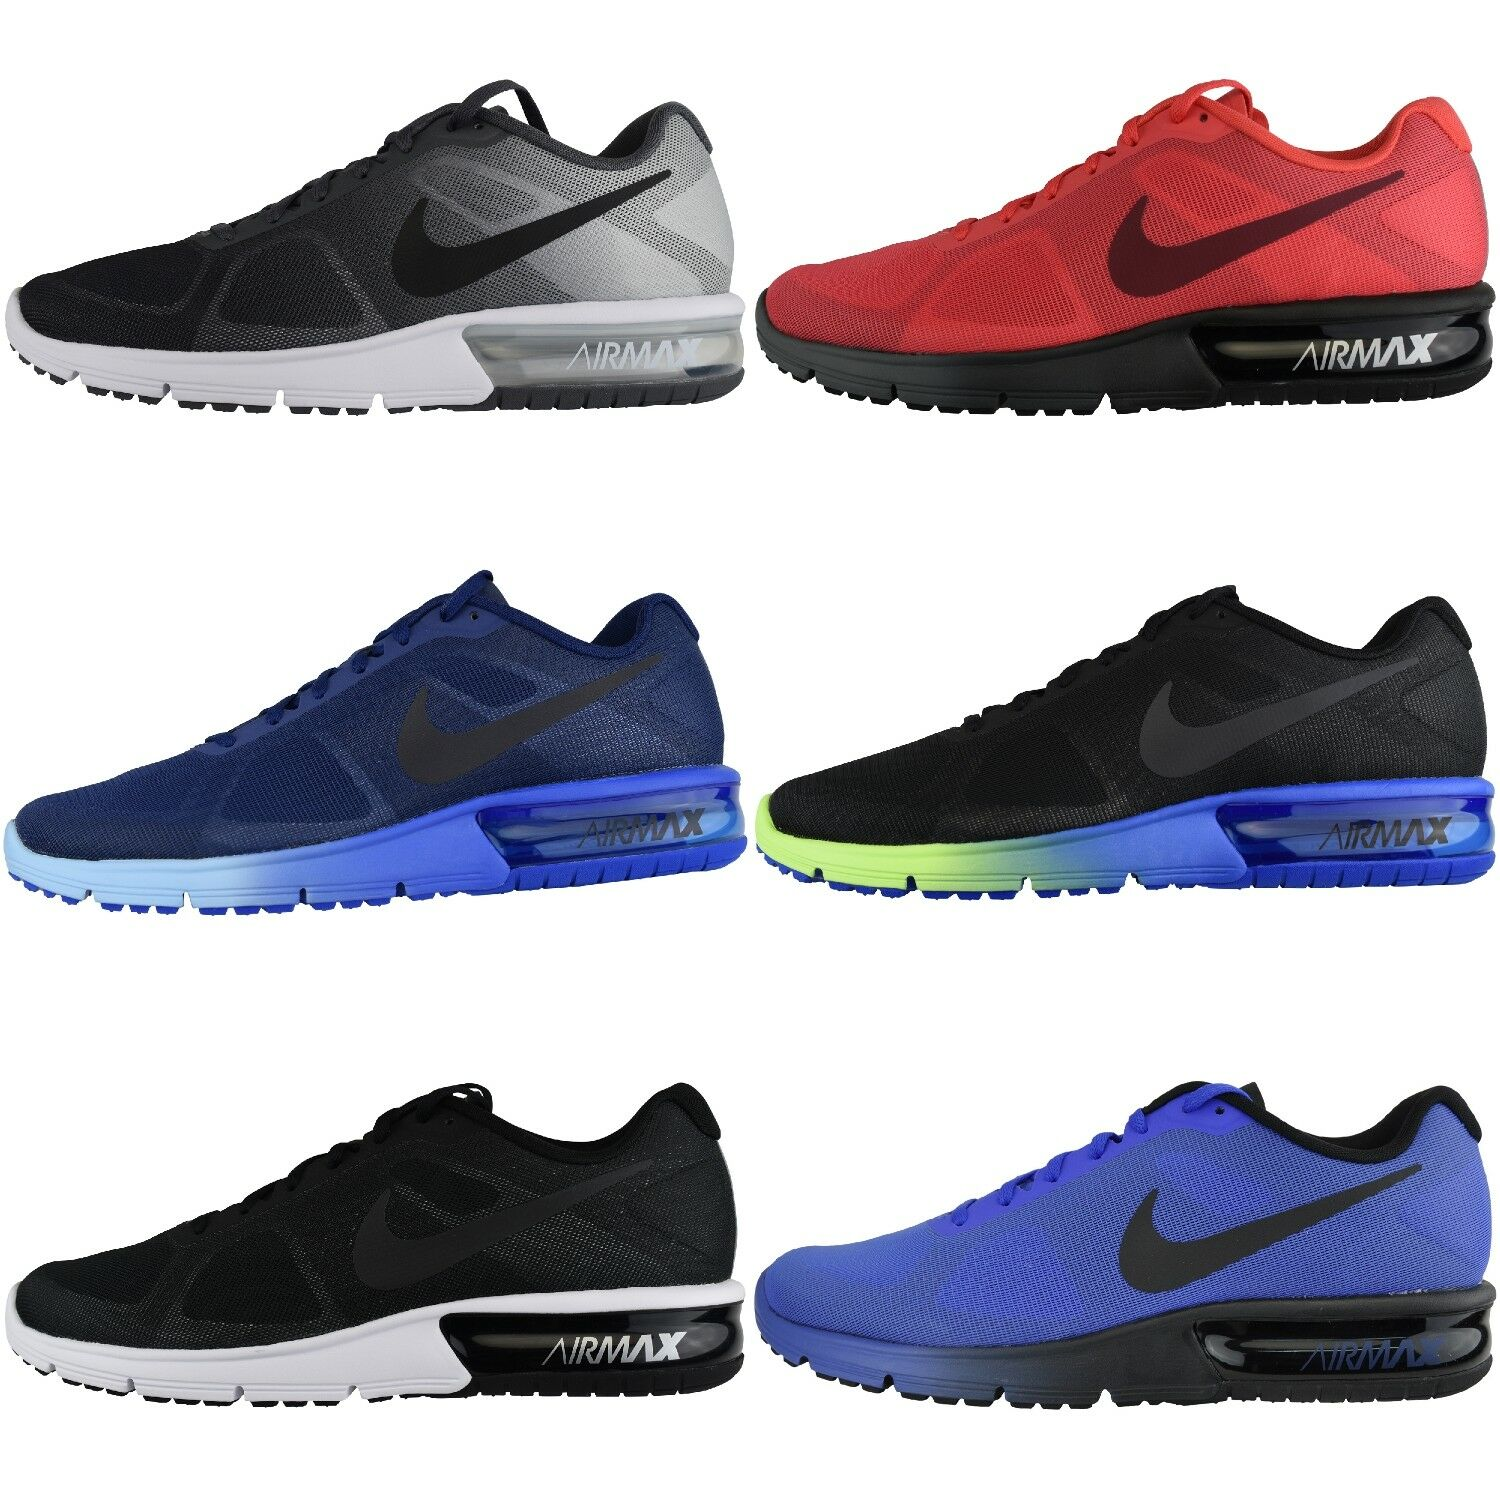 Nike Air Max Sequent Trainers Athletic shoes Running shoes Trainers Textile